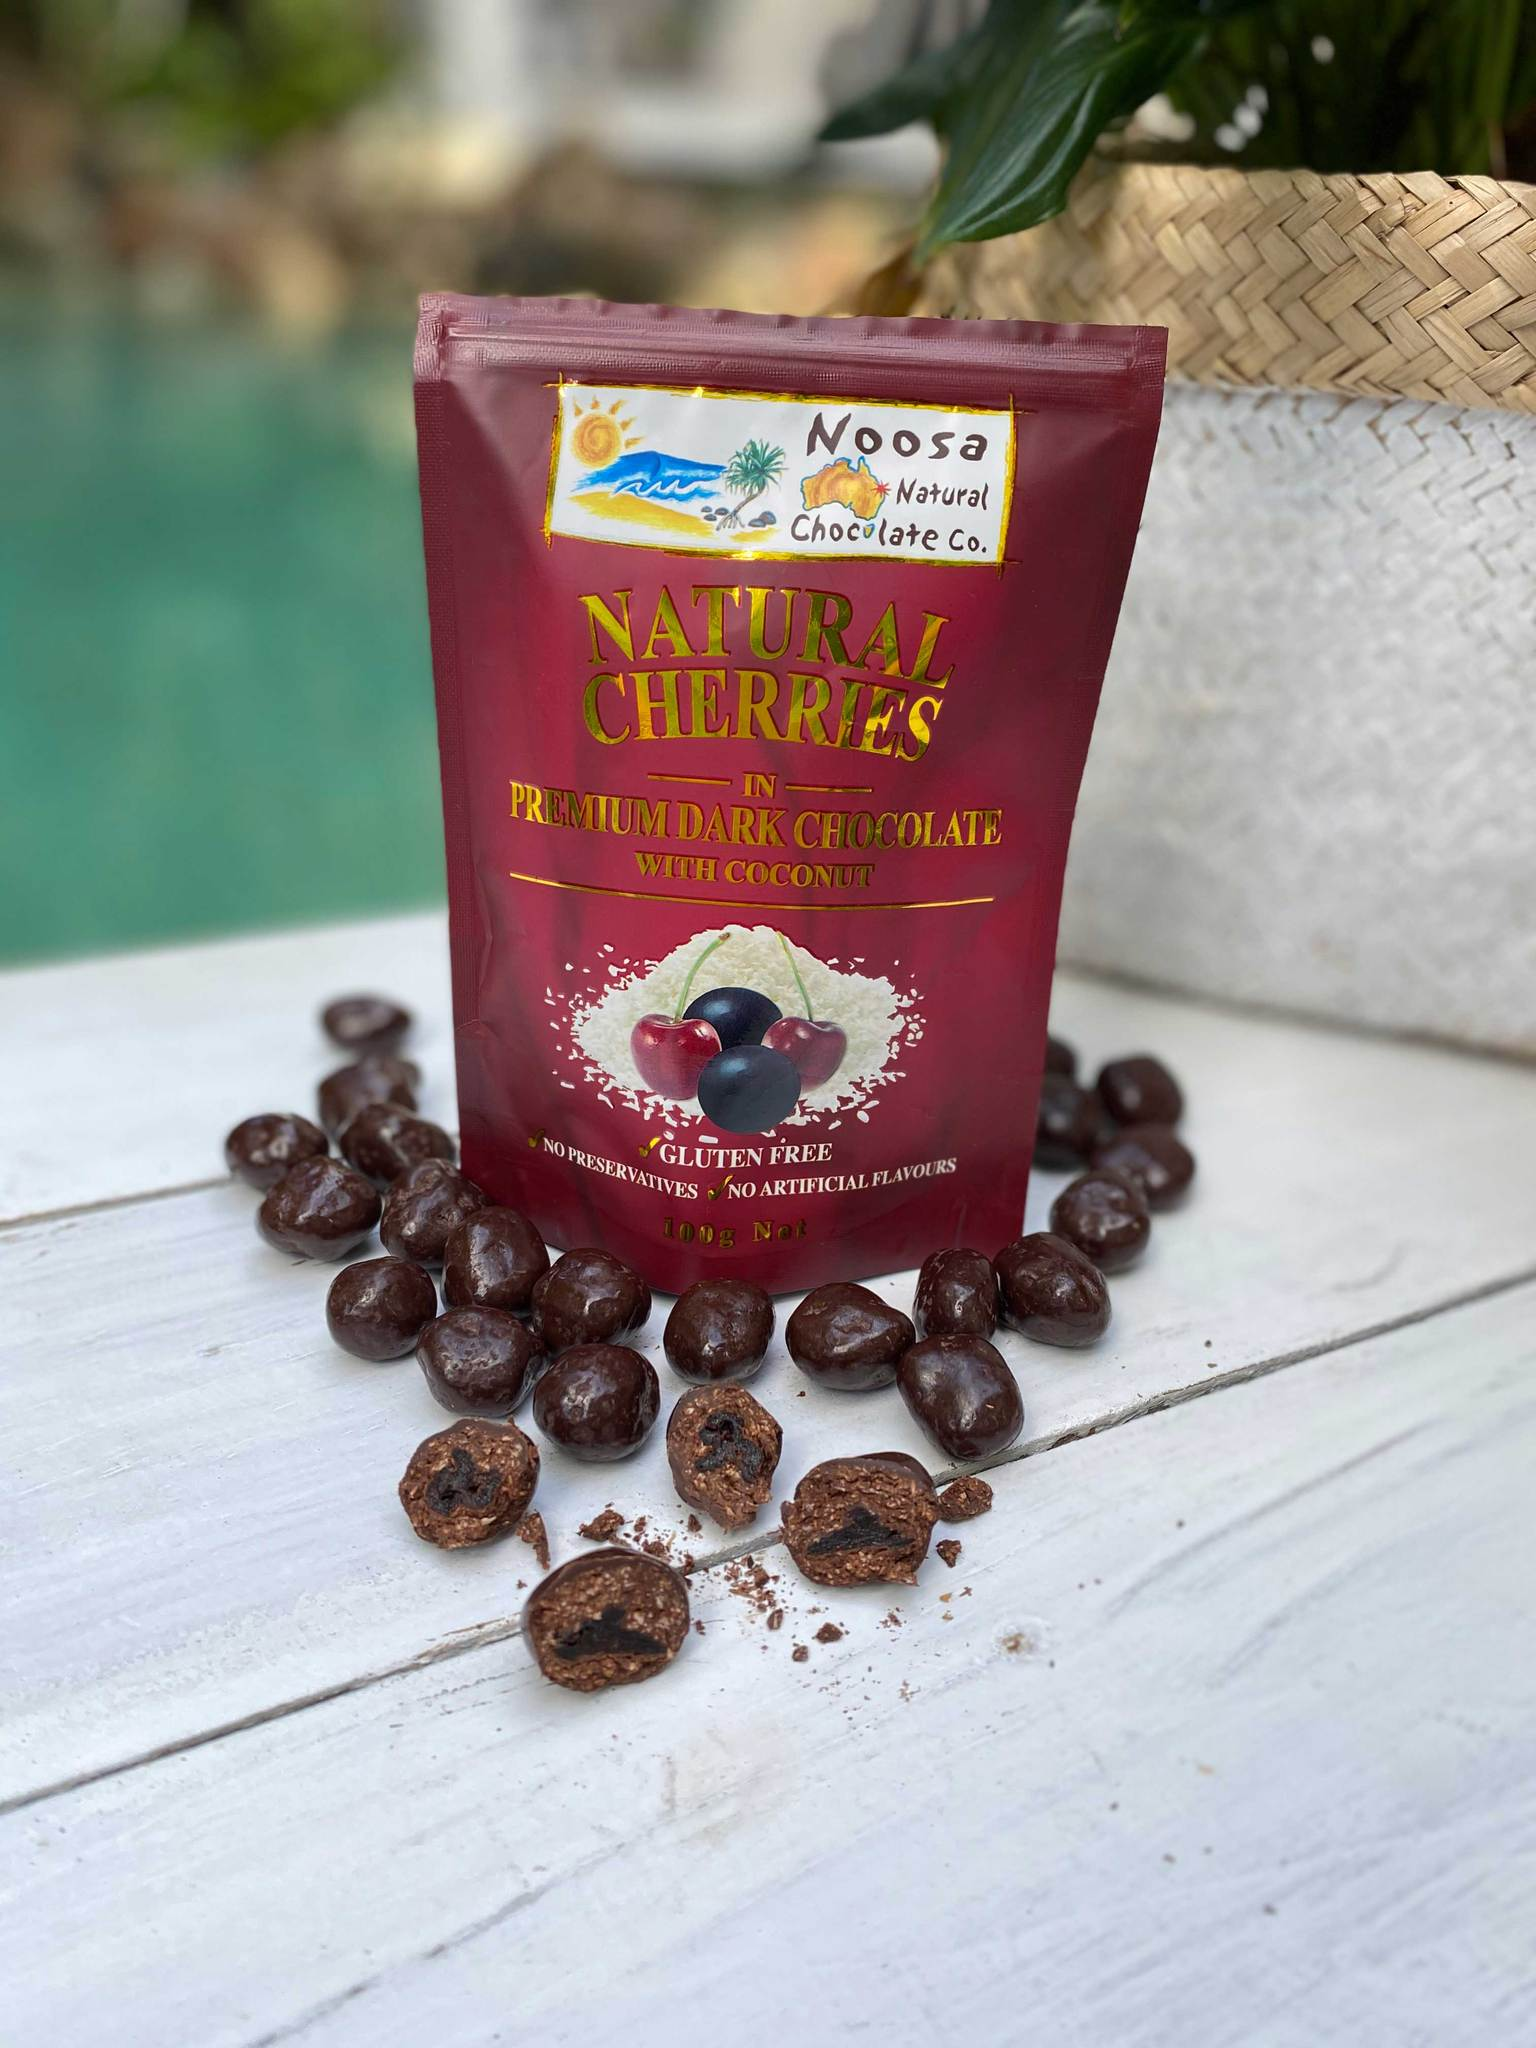 Noosa Natural chocolate Co Natural Cherries in Premium Dark chocolate with Coconut